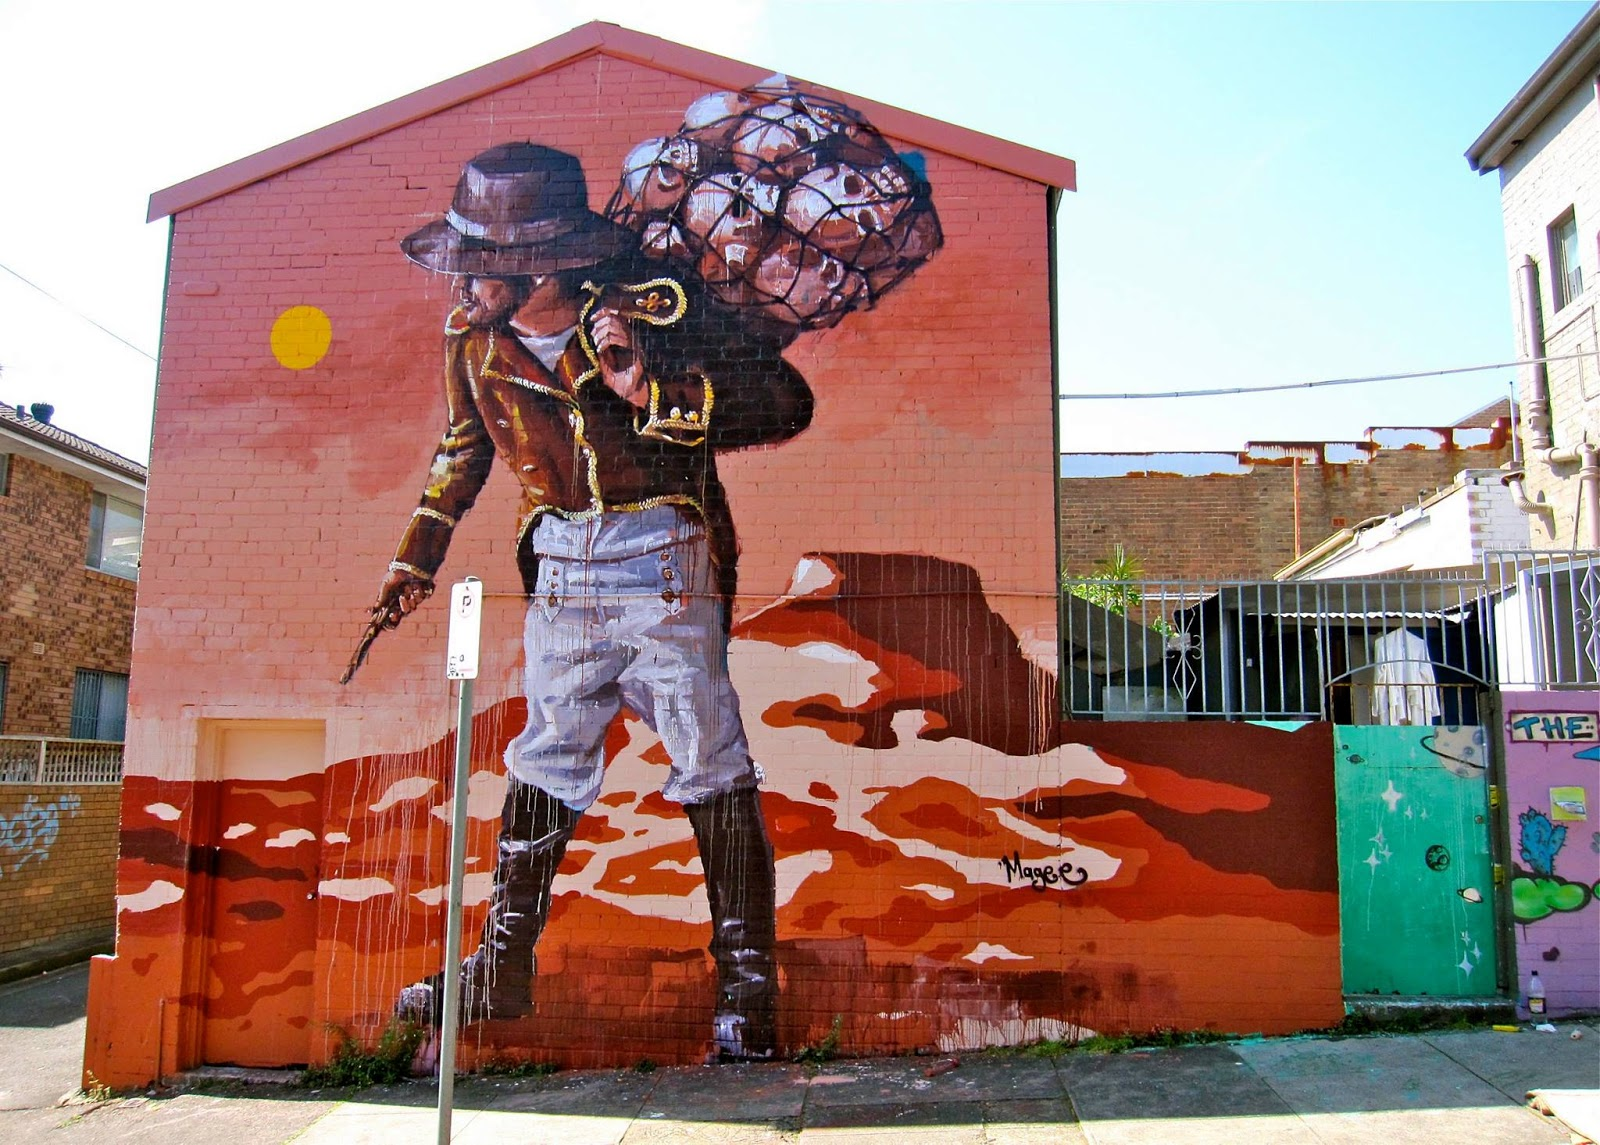 Fintan Magee is back in Australia where he spent a few days working on this new piece somewhere in Enmore, Sydney.